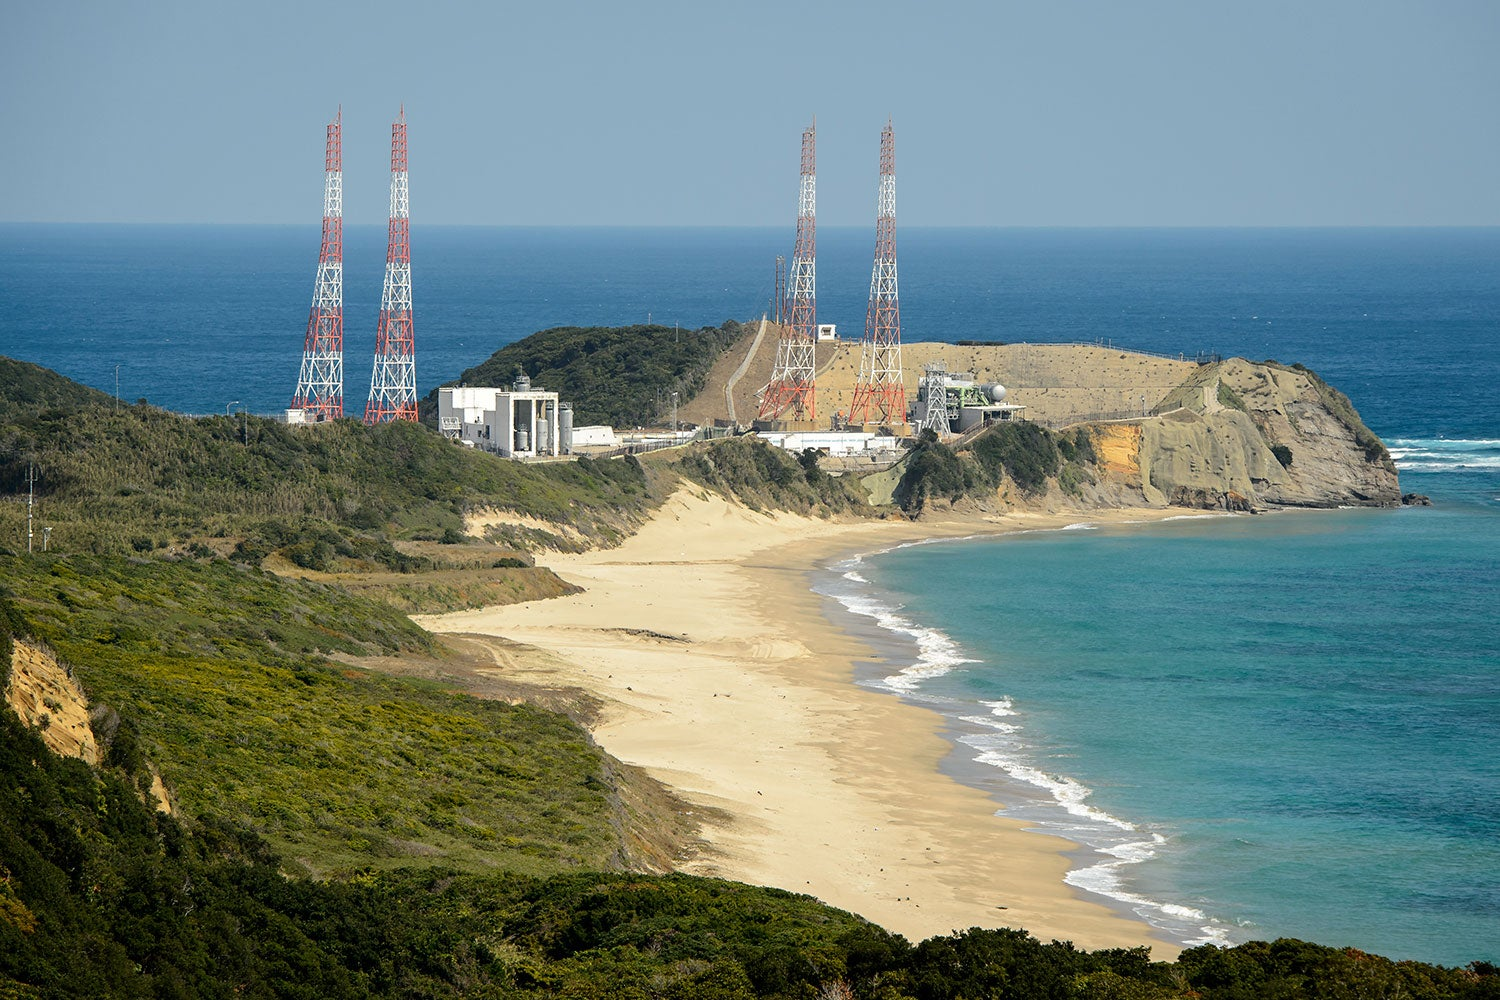 Japan's rocket launch site looks like a Bond villain's secret lair